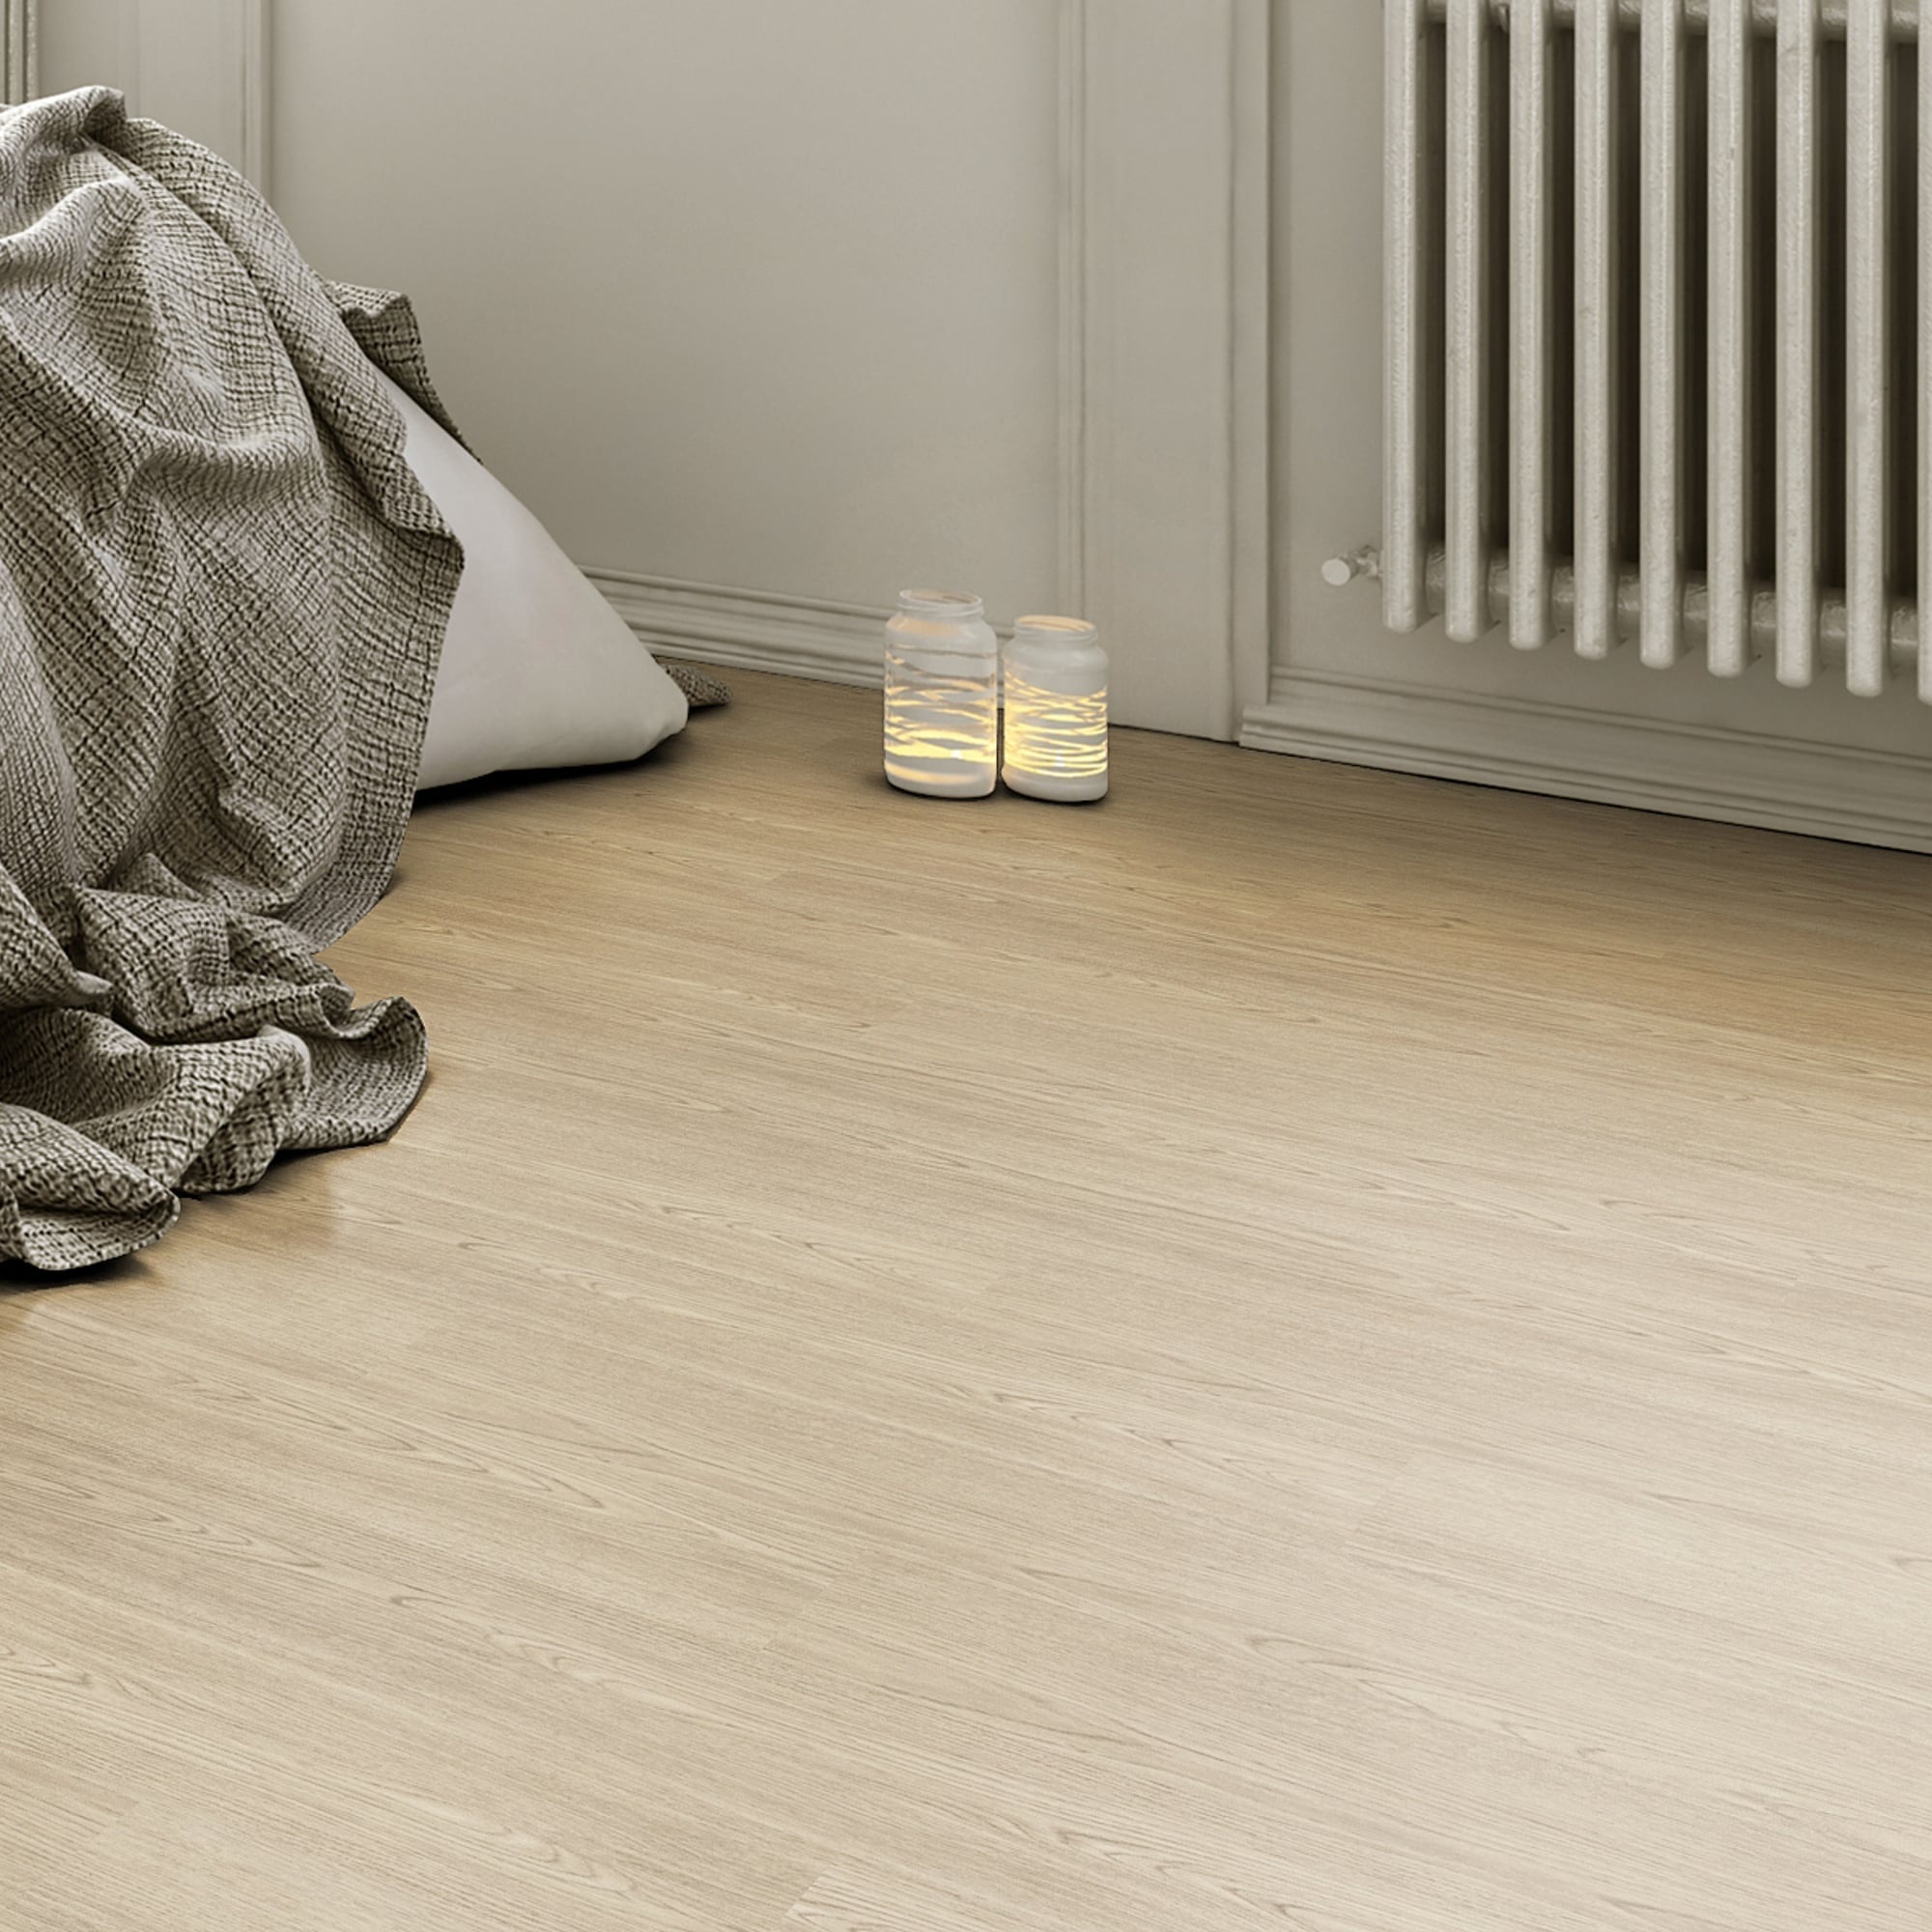 luvanto glue down wood effect natural oak deep emboss 152x914mm luxury vinyl flooring plank qaf u2039